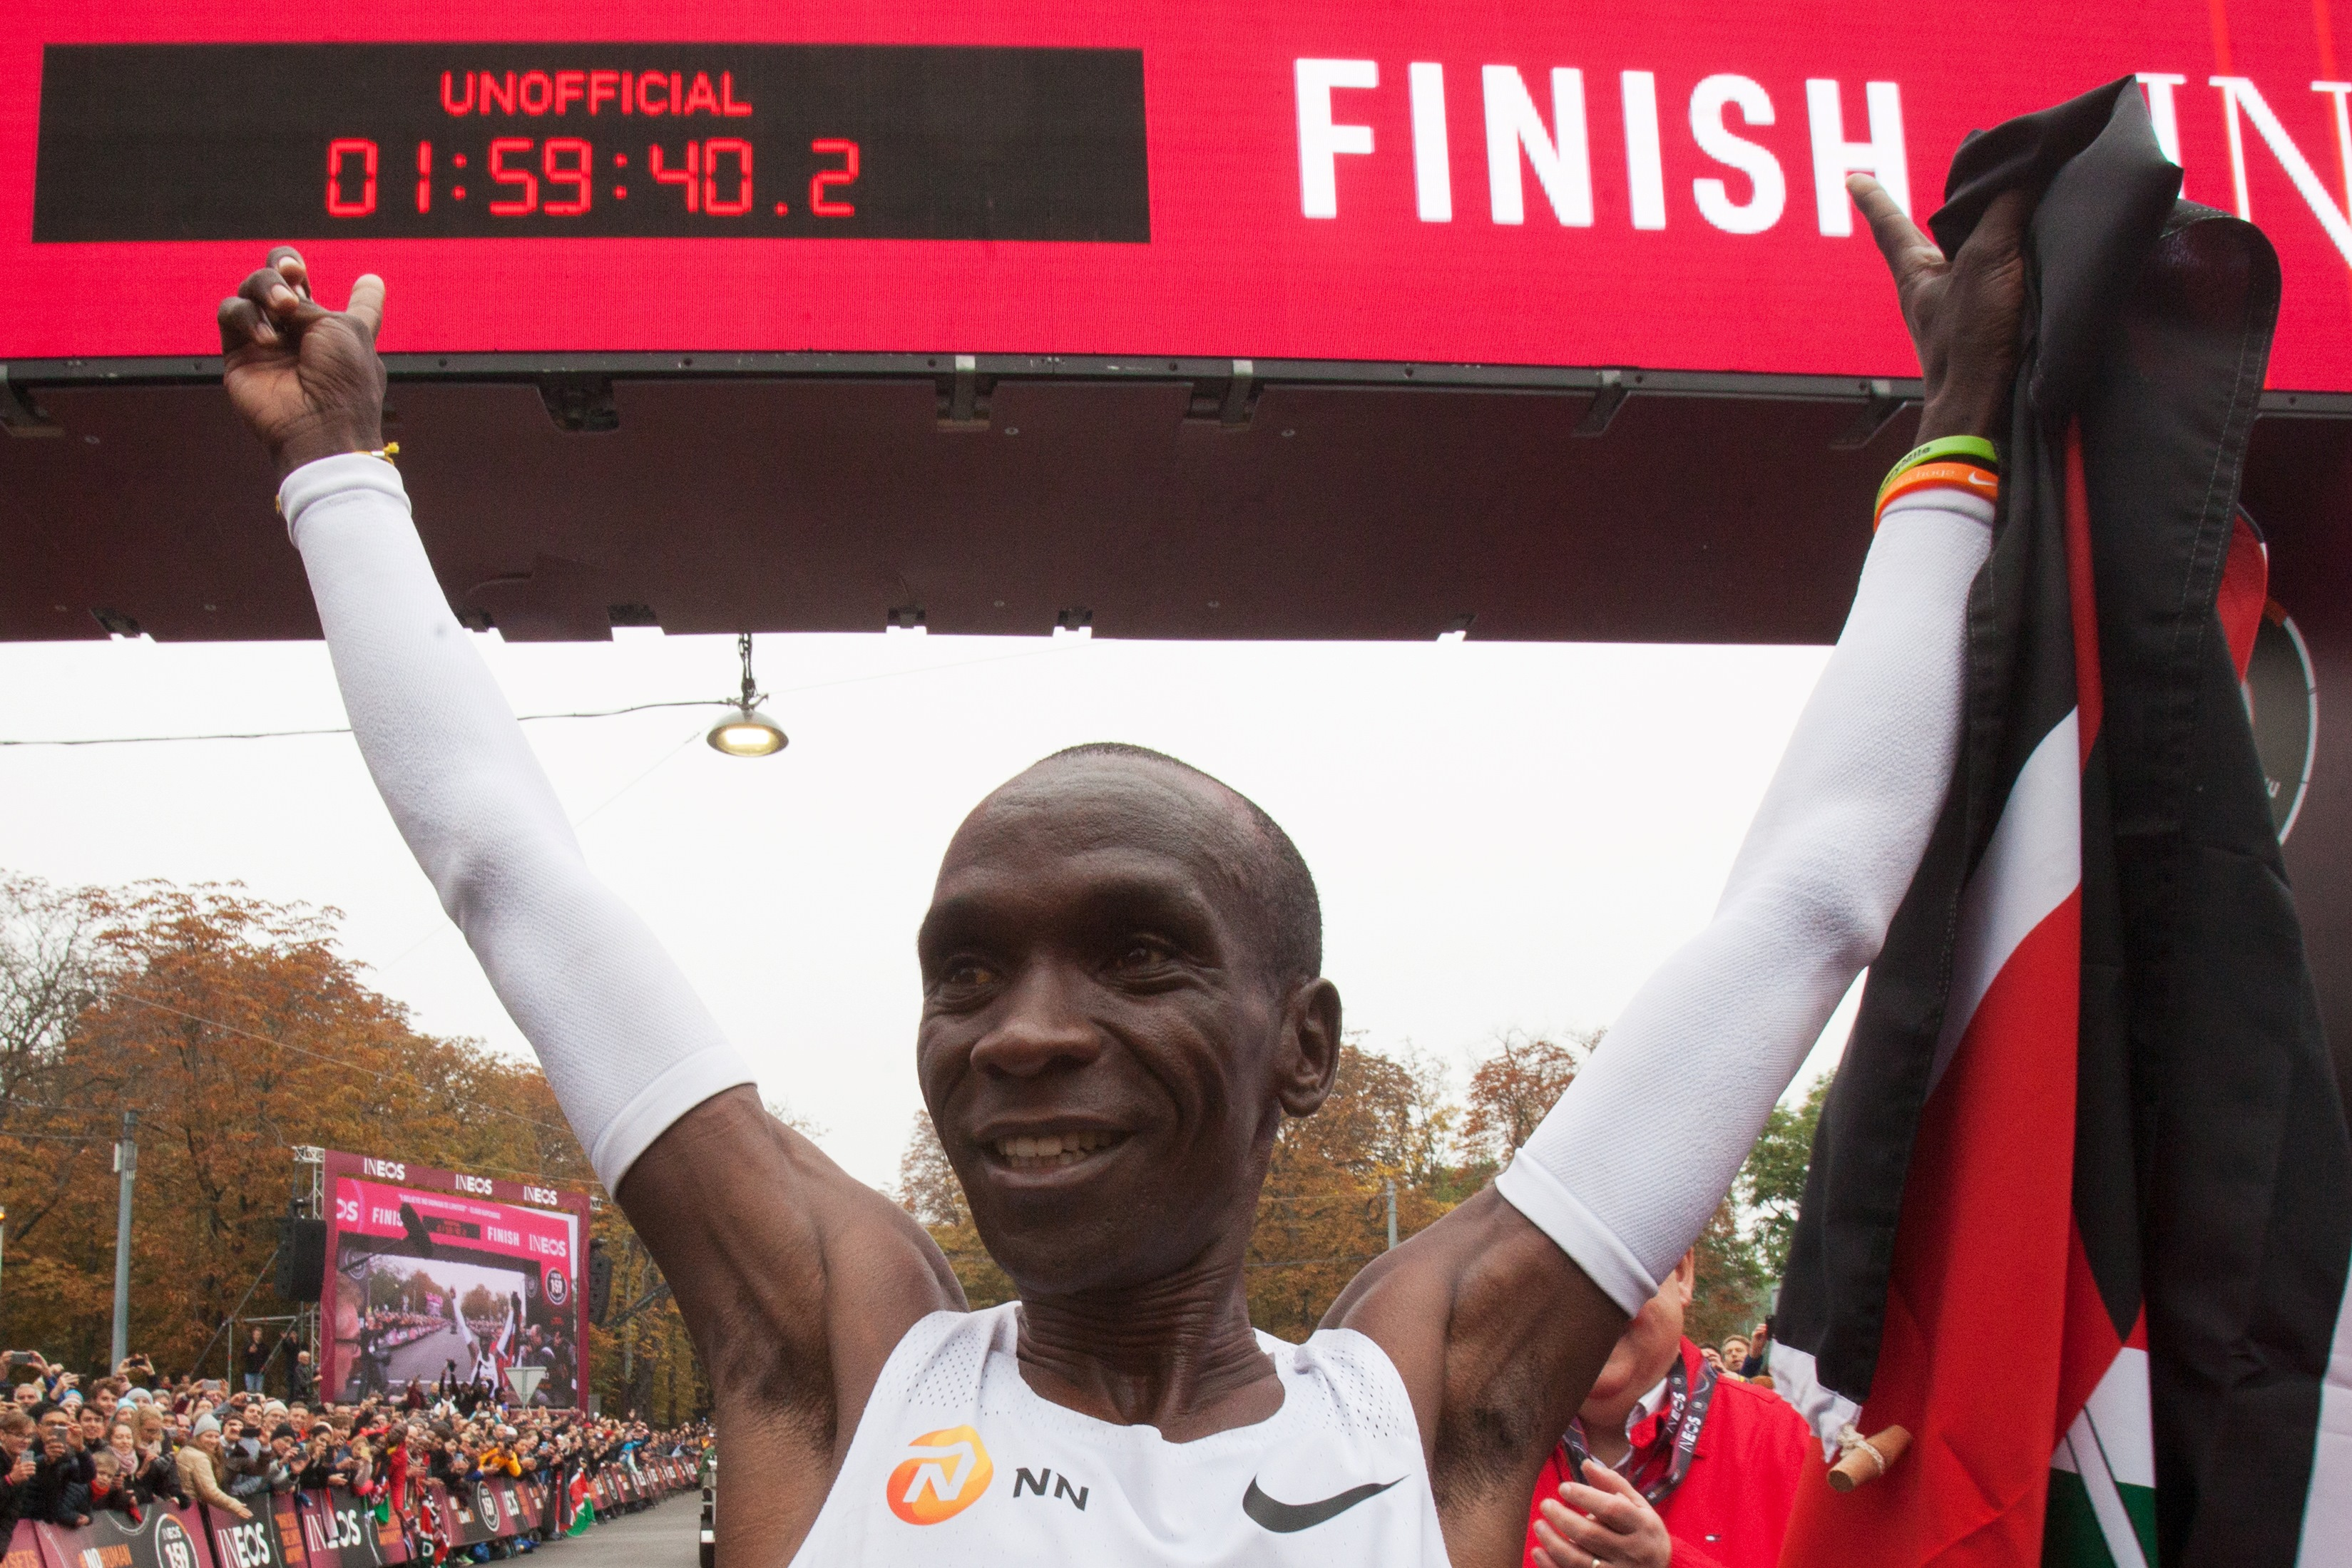 Eliud Kipchoge ran a marathon in less than 2 hours. Human potential is undefeated